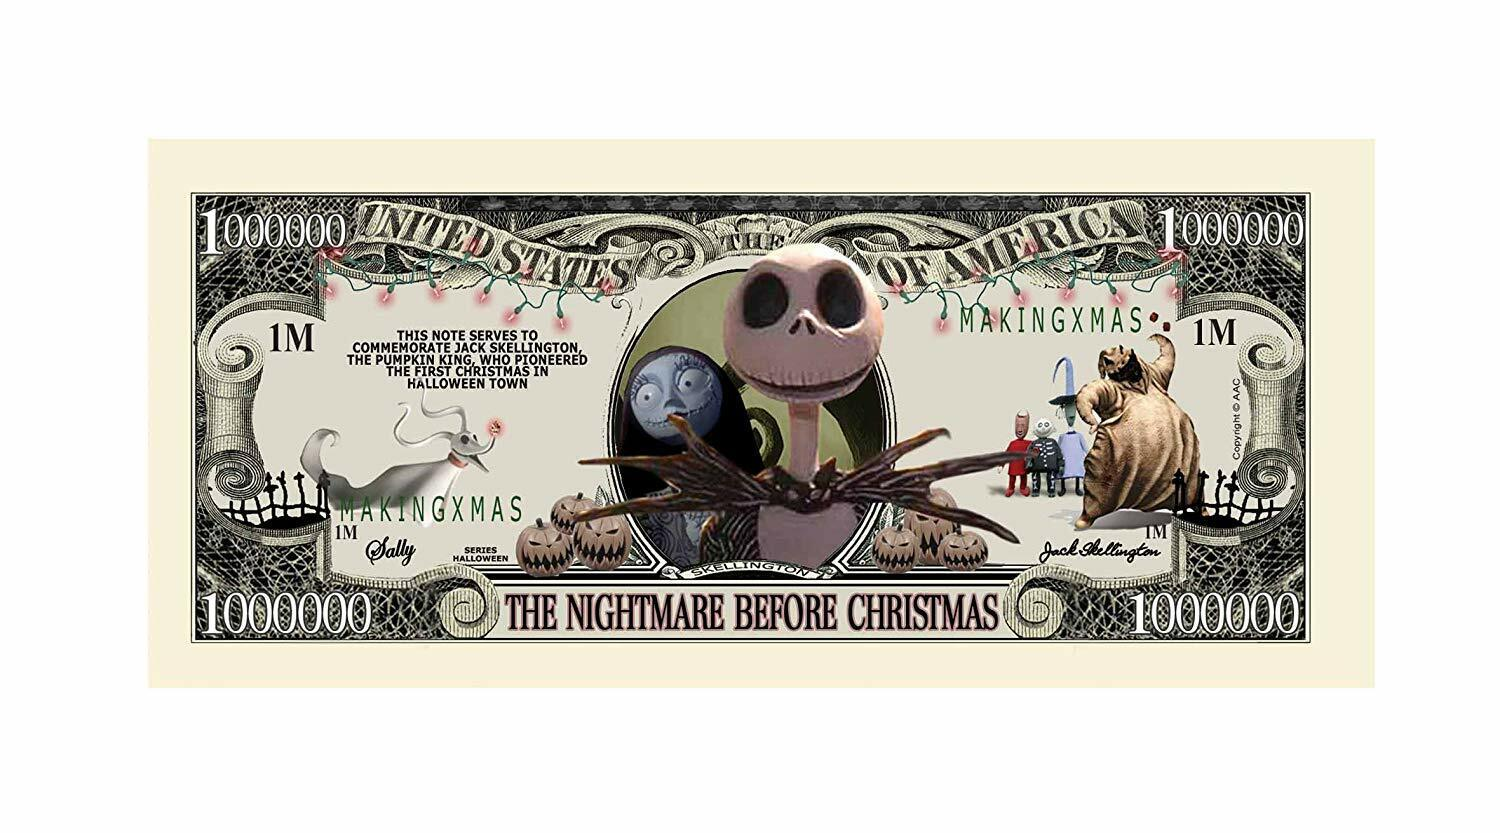 5 Nightmare Before Christmas Collectible Dollar Bill Novelty Note Lot Без бренда - фотография #2